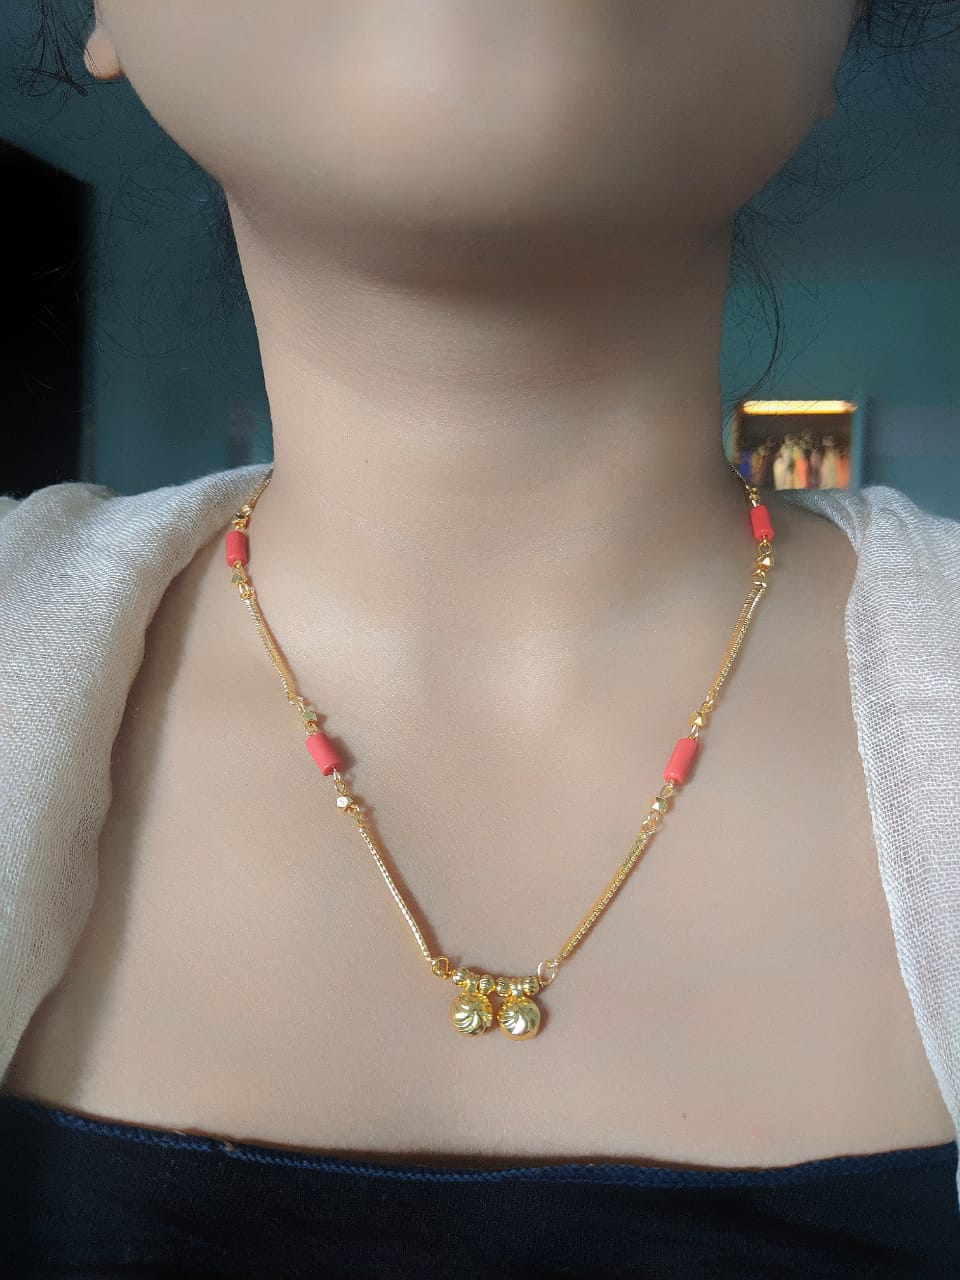 Short Mangalsutra Designs Gold Plated Latest Coral with 2 Vati Pendant Mangalsutra - DigitalDressRoom